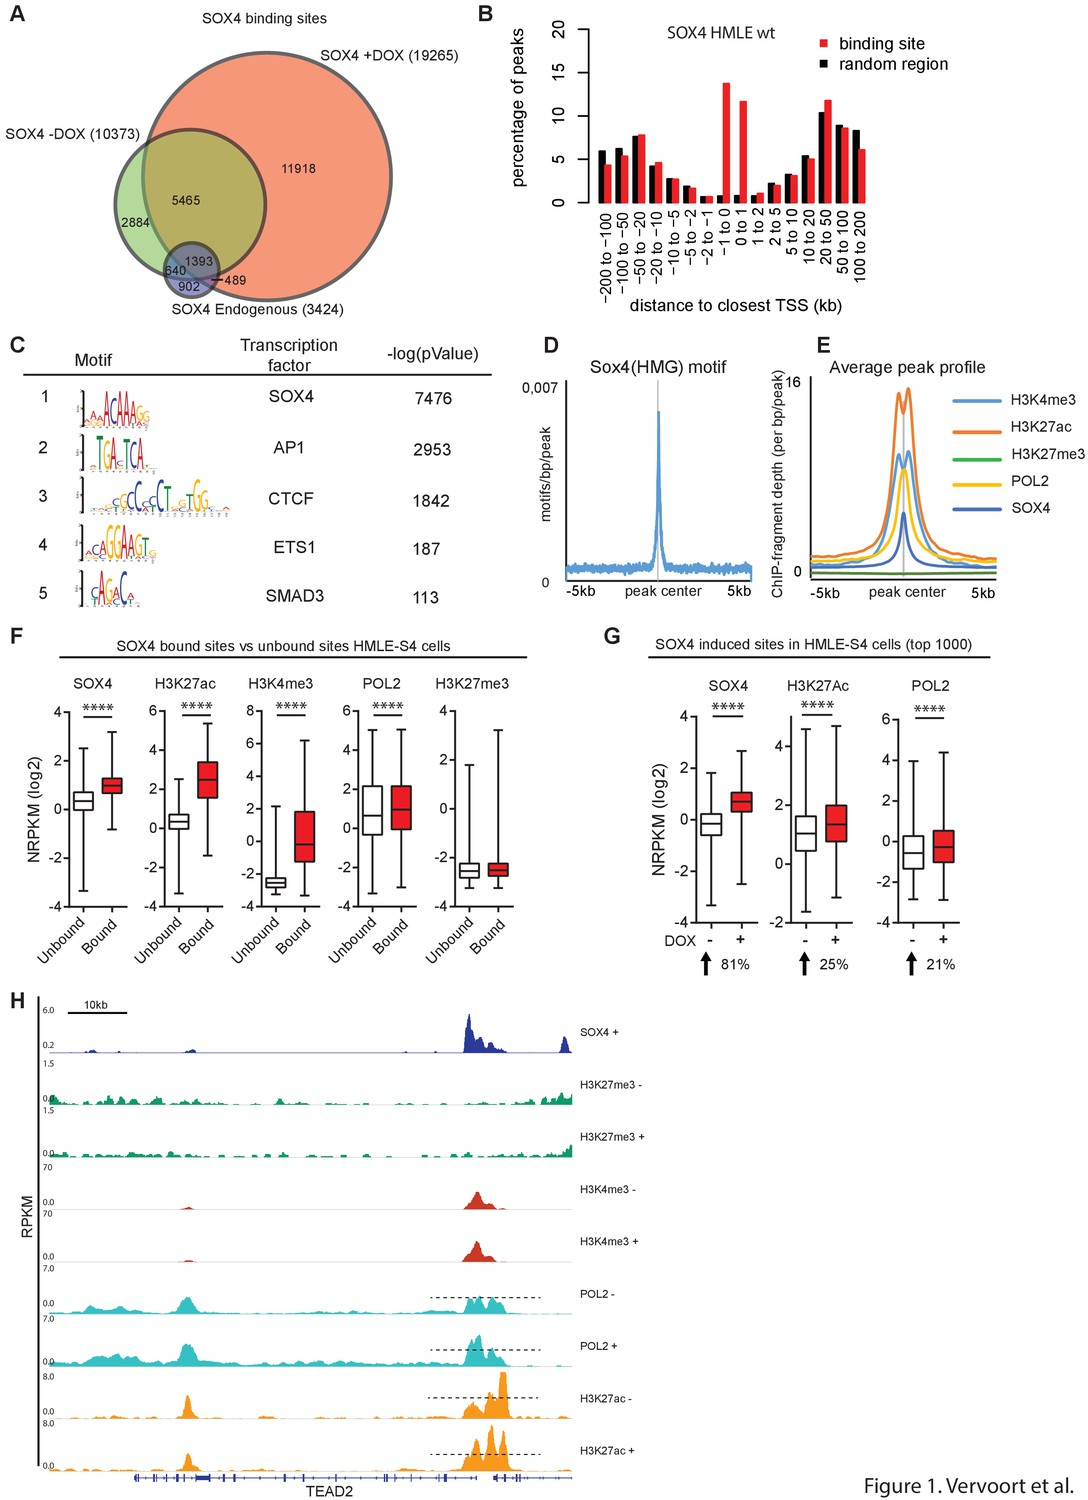 Global transcriptional analysis identifies a novel role for SOX4 in